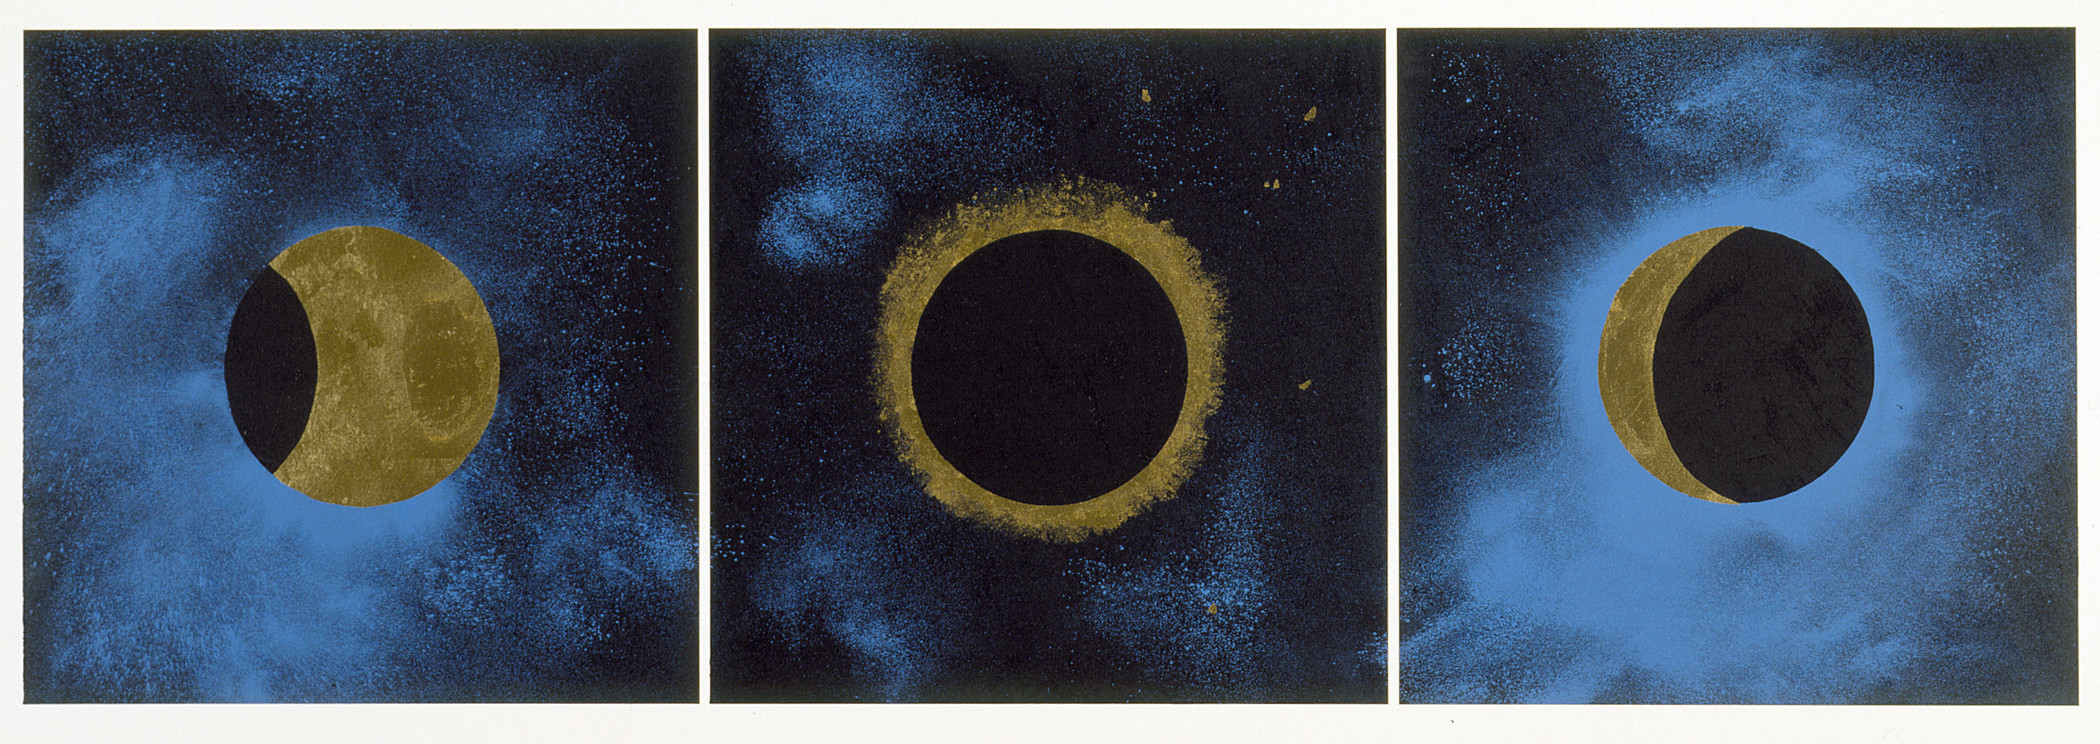 Lita Albuquerque, Solar Eclipse, 1992, Los Angeles County Museum of Art, Cirrus Editions Archive, purchased with funds provided by the Ducommun and Gross Endowment Income Fund, and gift of Cirrus Editions, © Lita Albuquerque, photo © Museum Associates/LACMA